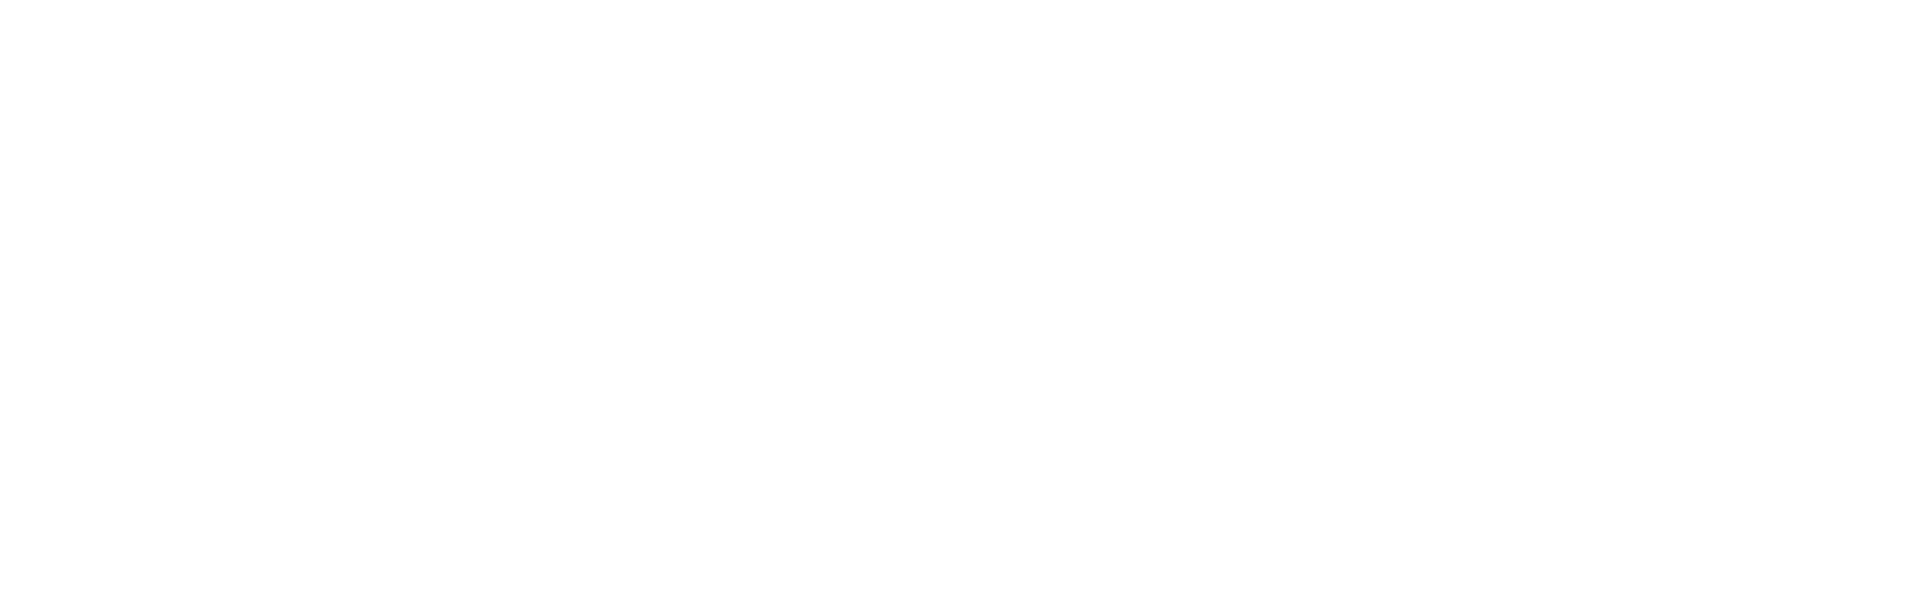 SalesSeek Logo